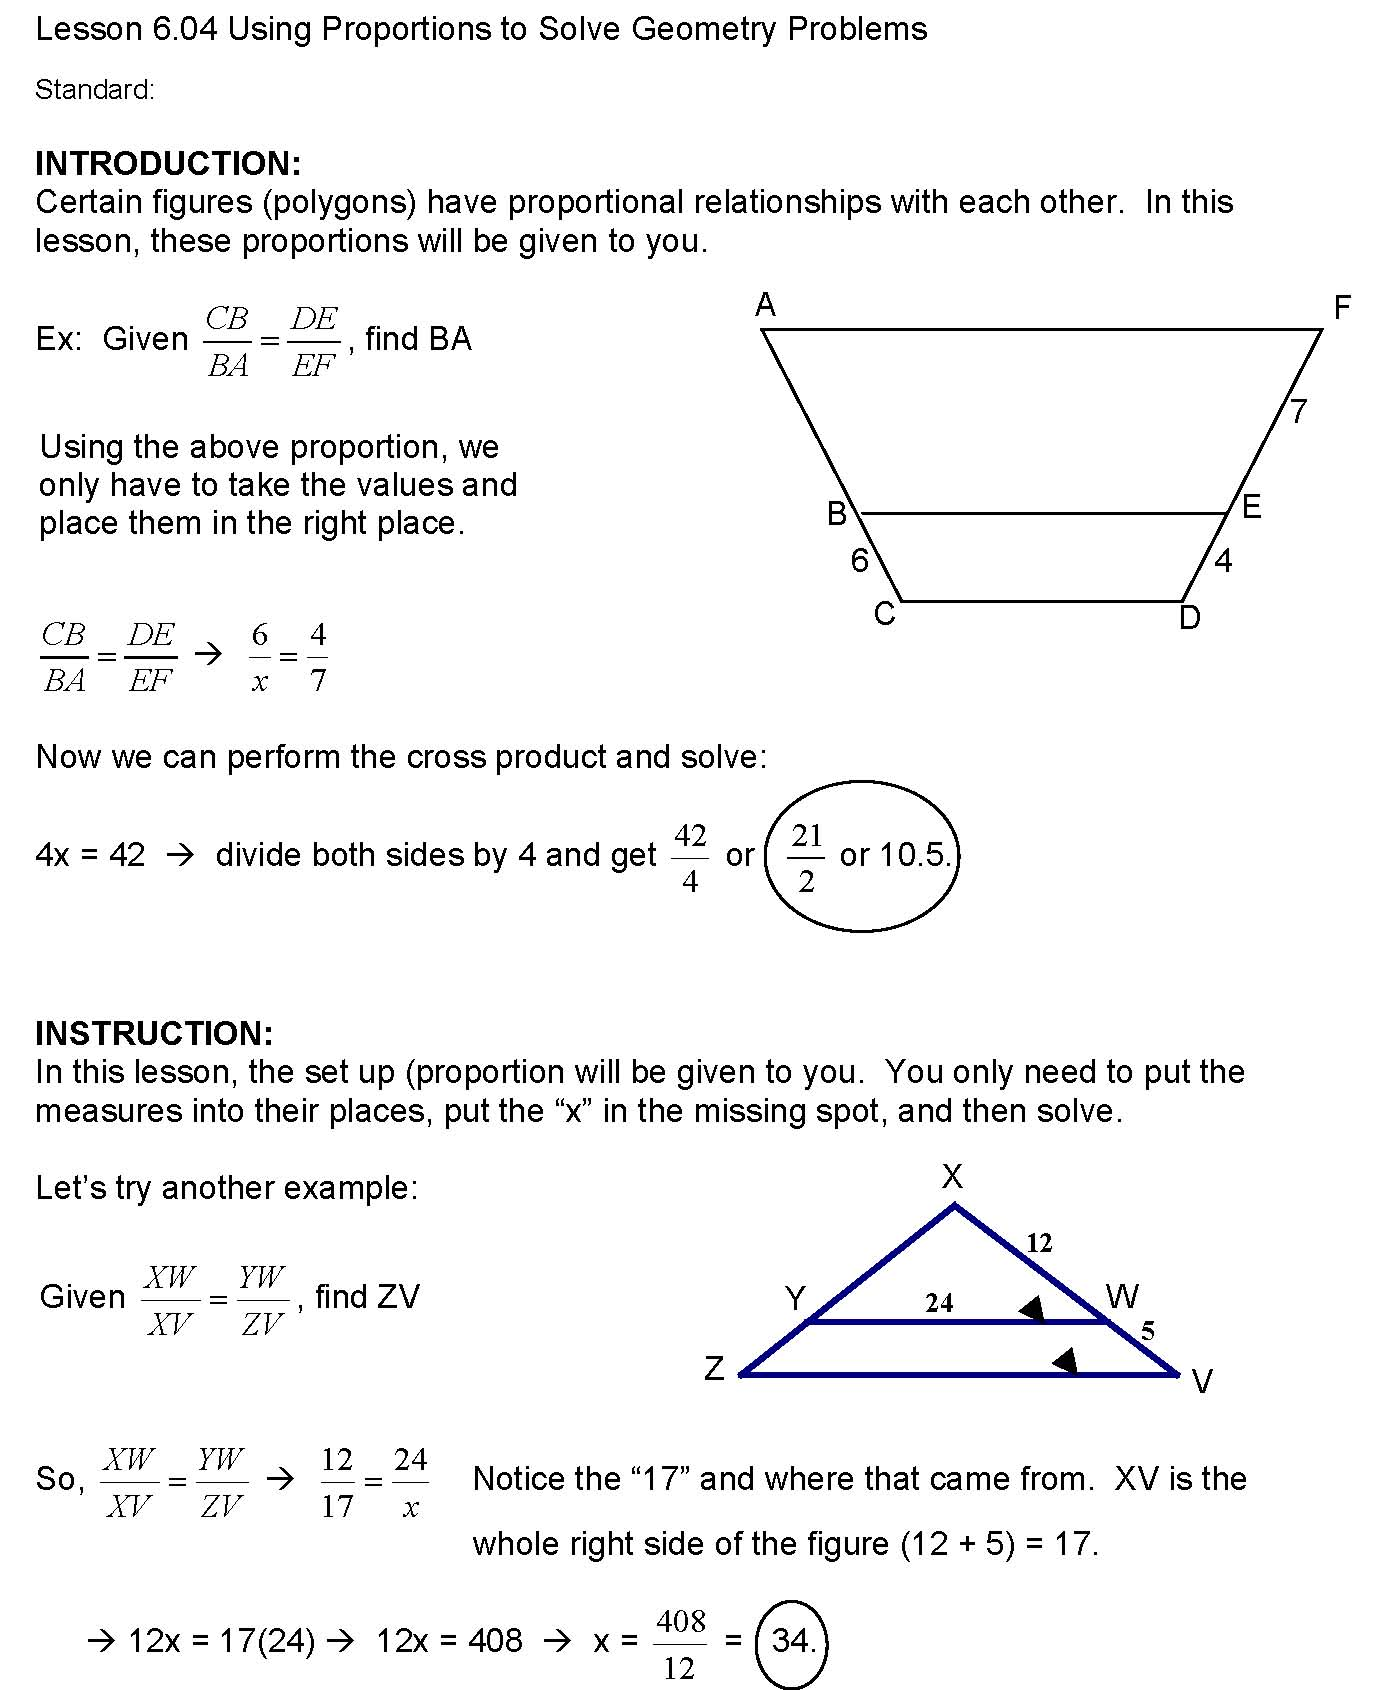 Cosgeometry Lesson 6 04 Using Proportions To Solve